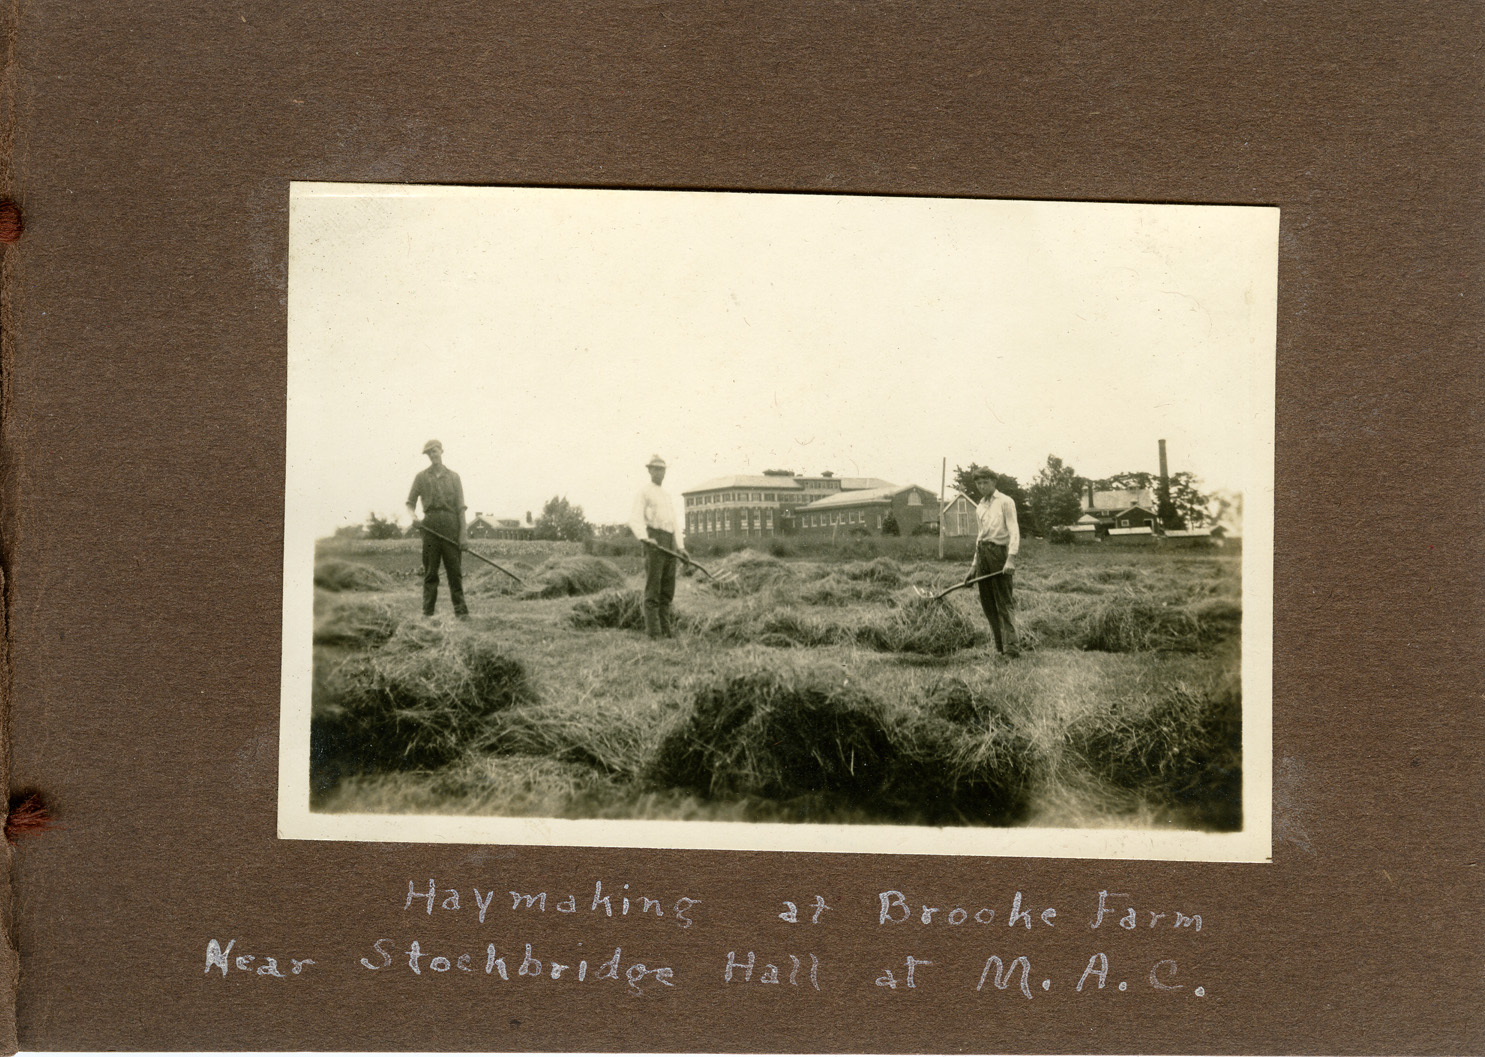 Image of Haying at MAC